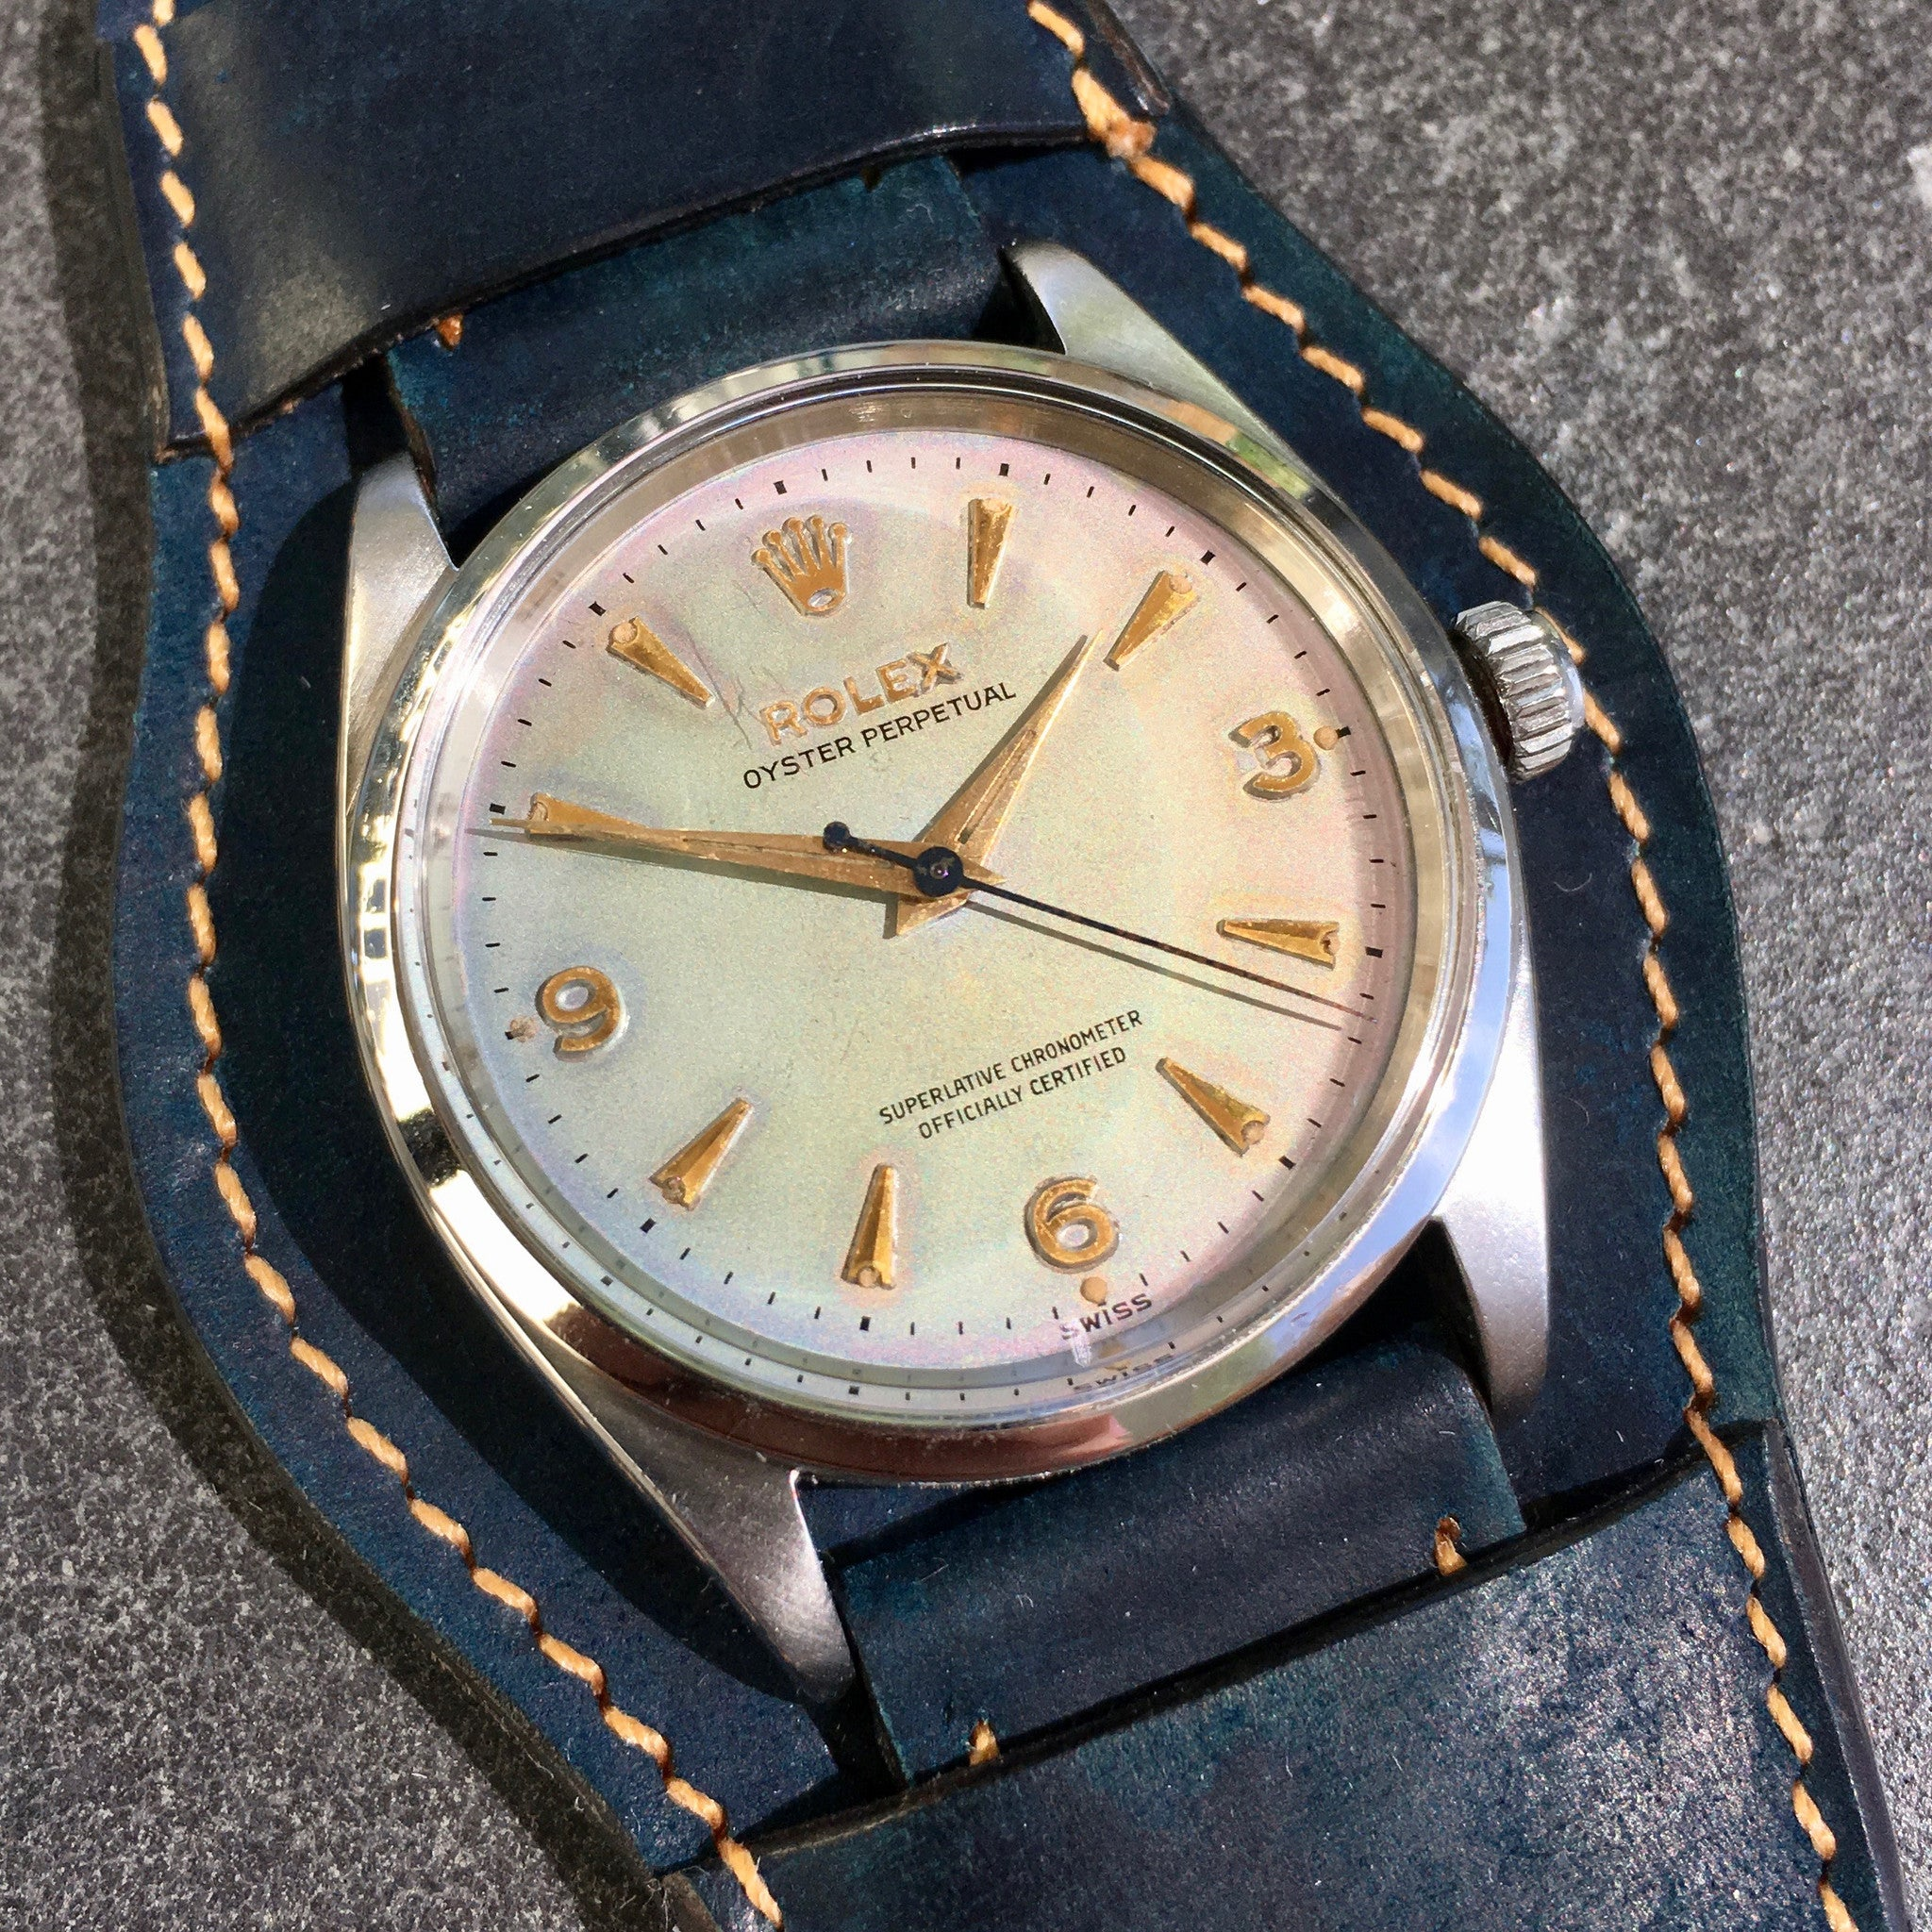 Vintage Rolex Oyster Perpetual 1002 RARE Iridescent Stainless Steel 1960 Wristwatch - Hashtag Watch Company